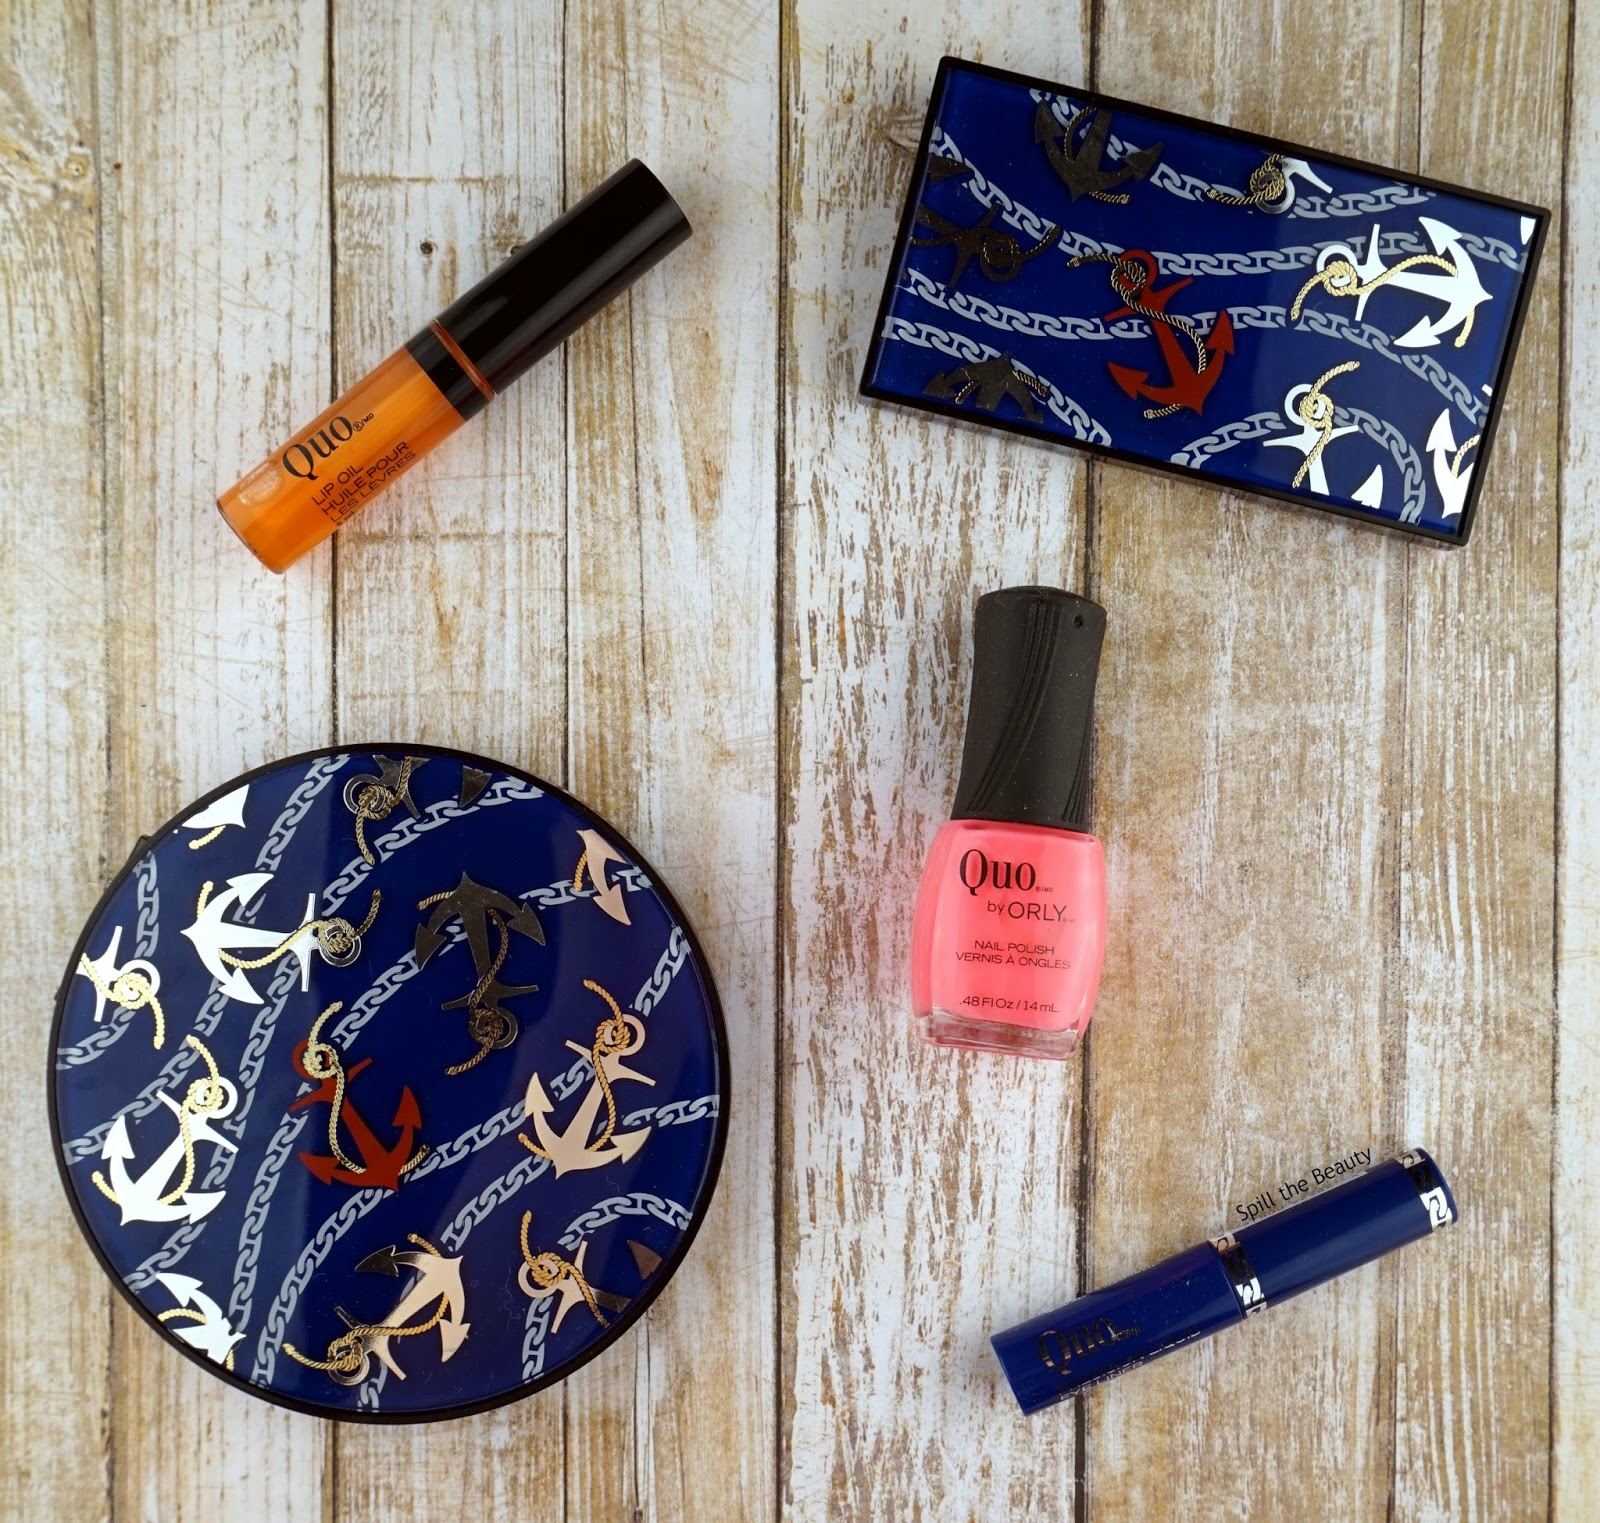 Quo Summer 2016 Limited Edition Summer Collection - Review and Swatches